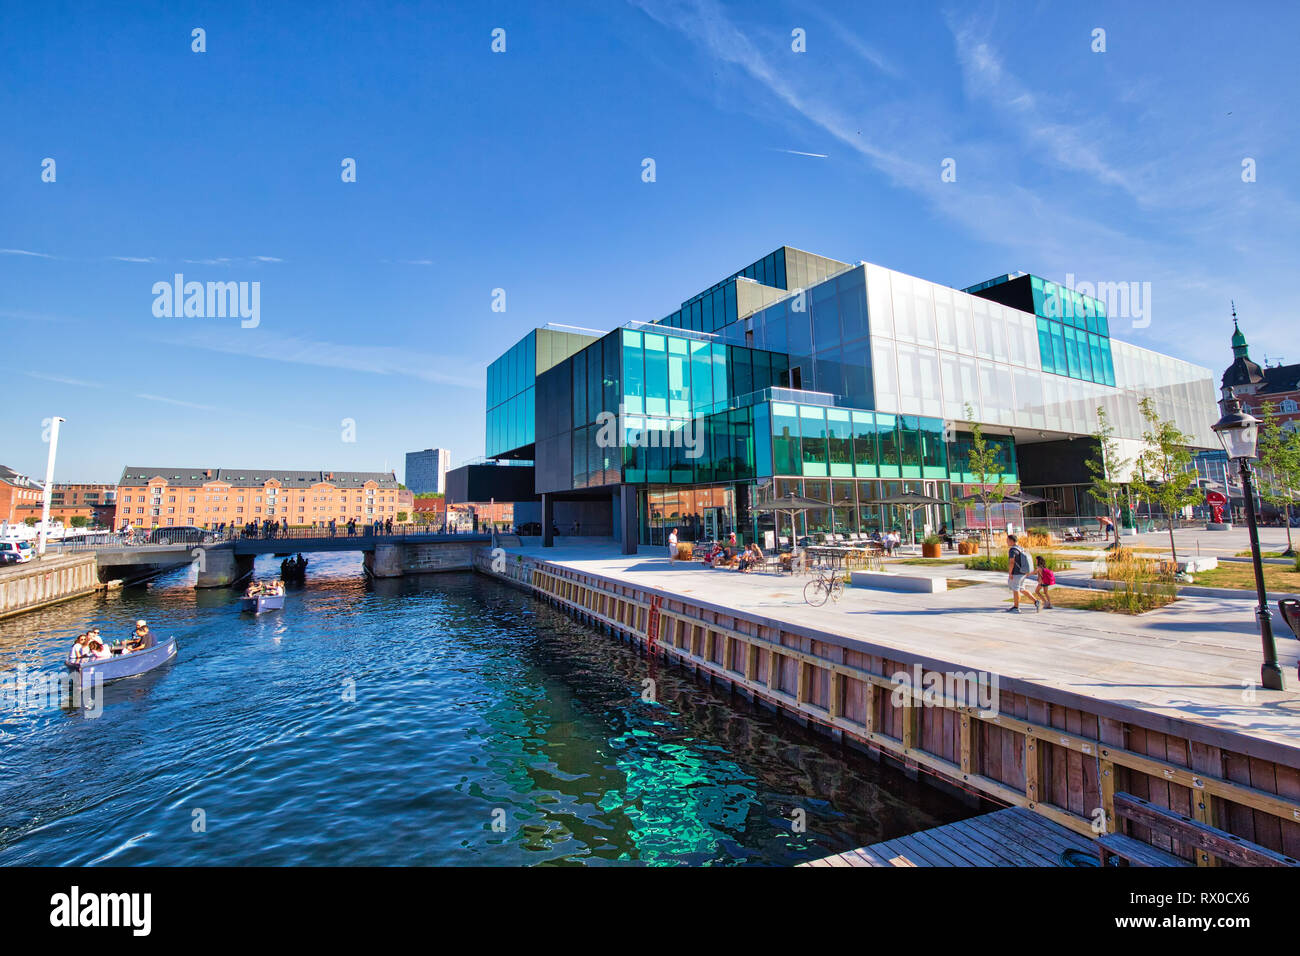 Copenhagen, Denmark-August 1, 2018: The BLOX building, a new prestige building for architecture and design on Christians Brygge in Copenhagen. (Also h - Stock Image